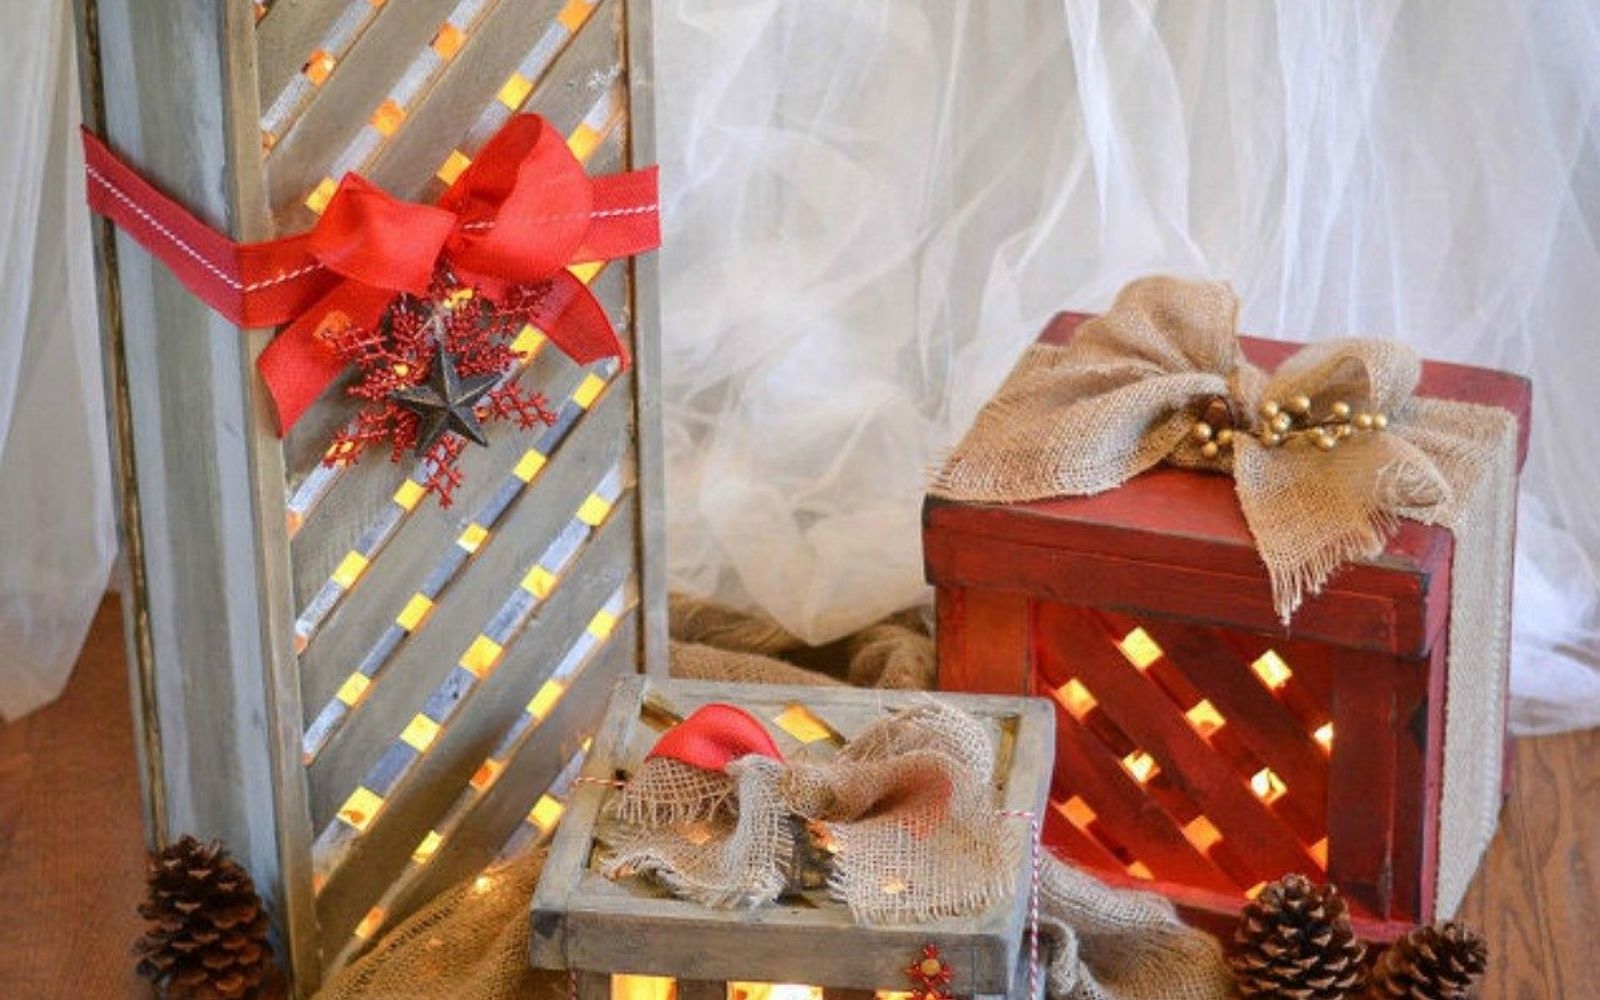 Christmas Diy Decorating Ideas: Make Your Porch Look Amazing With These DIY Christmas